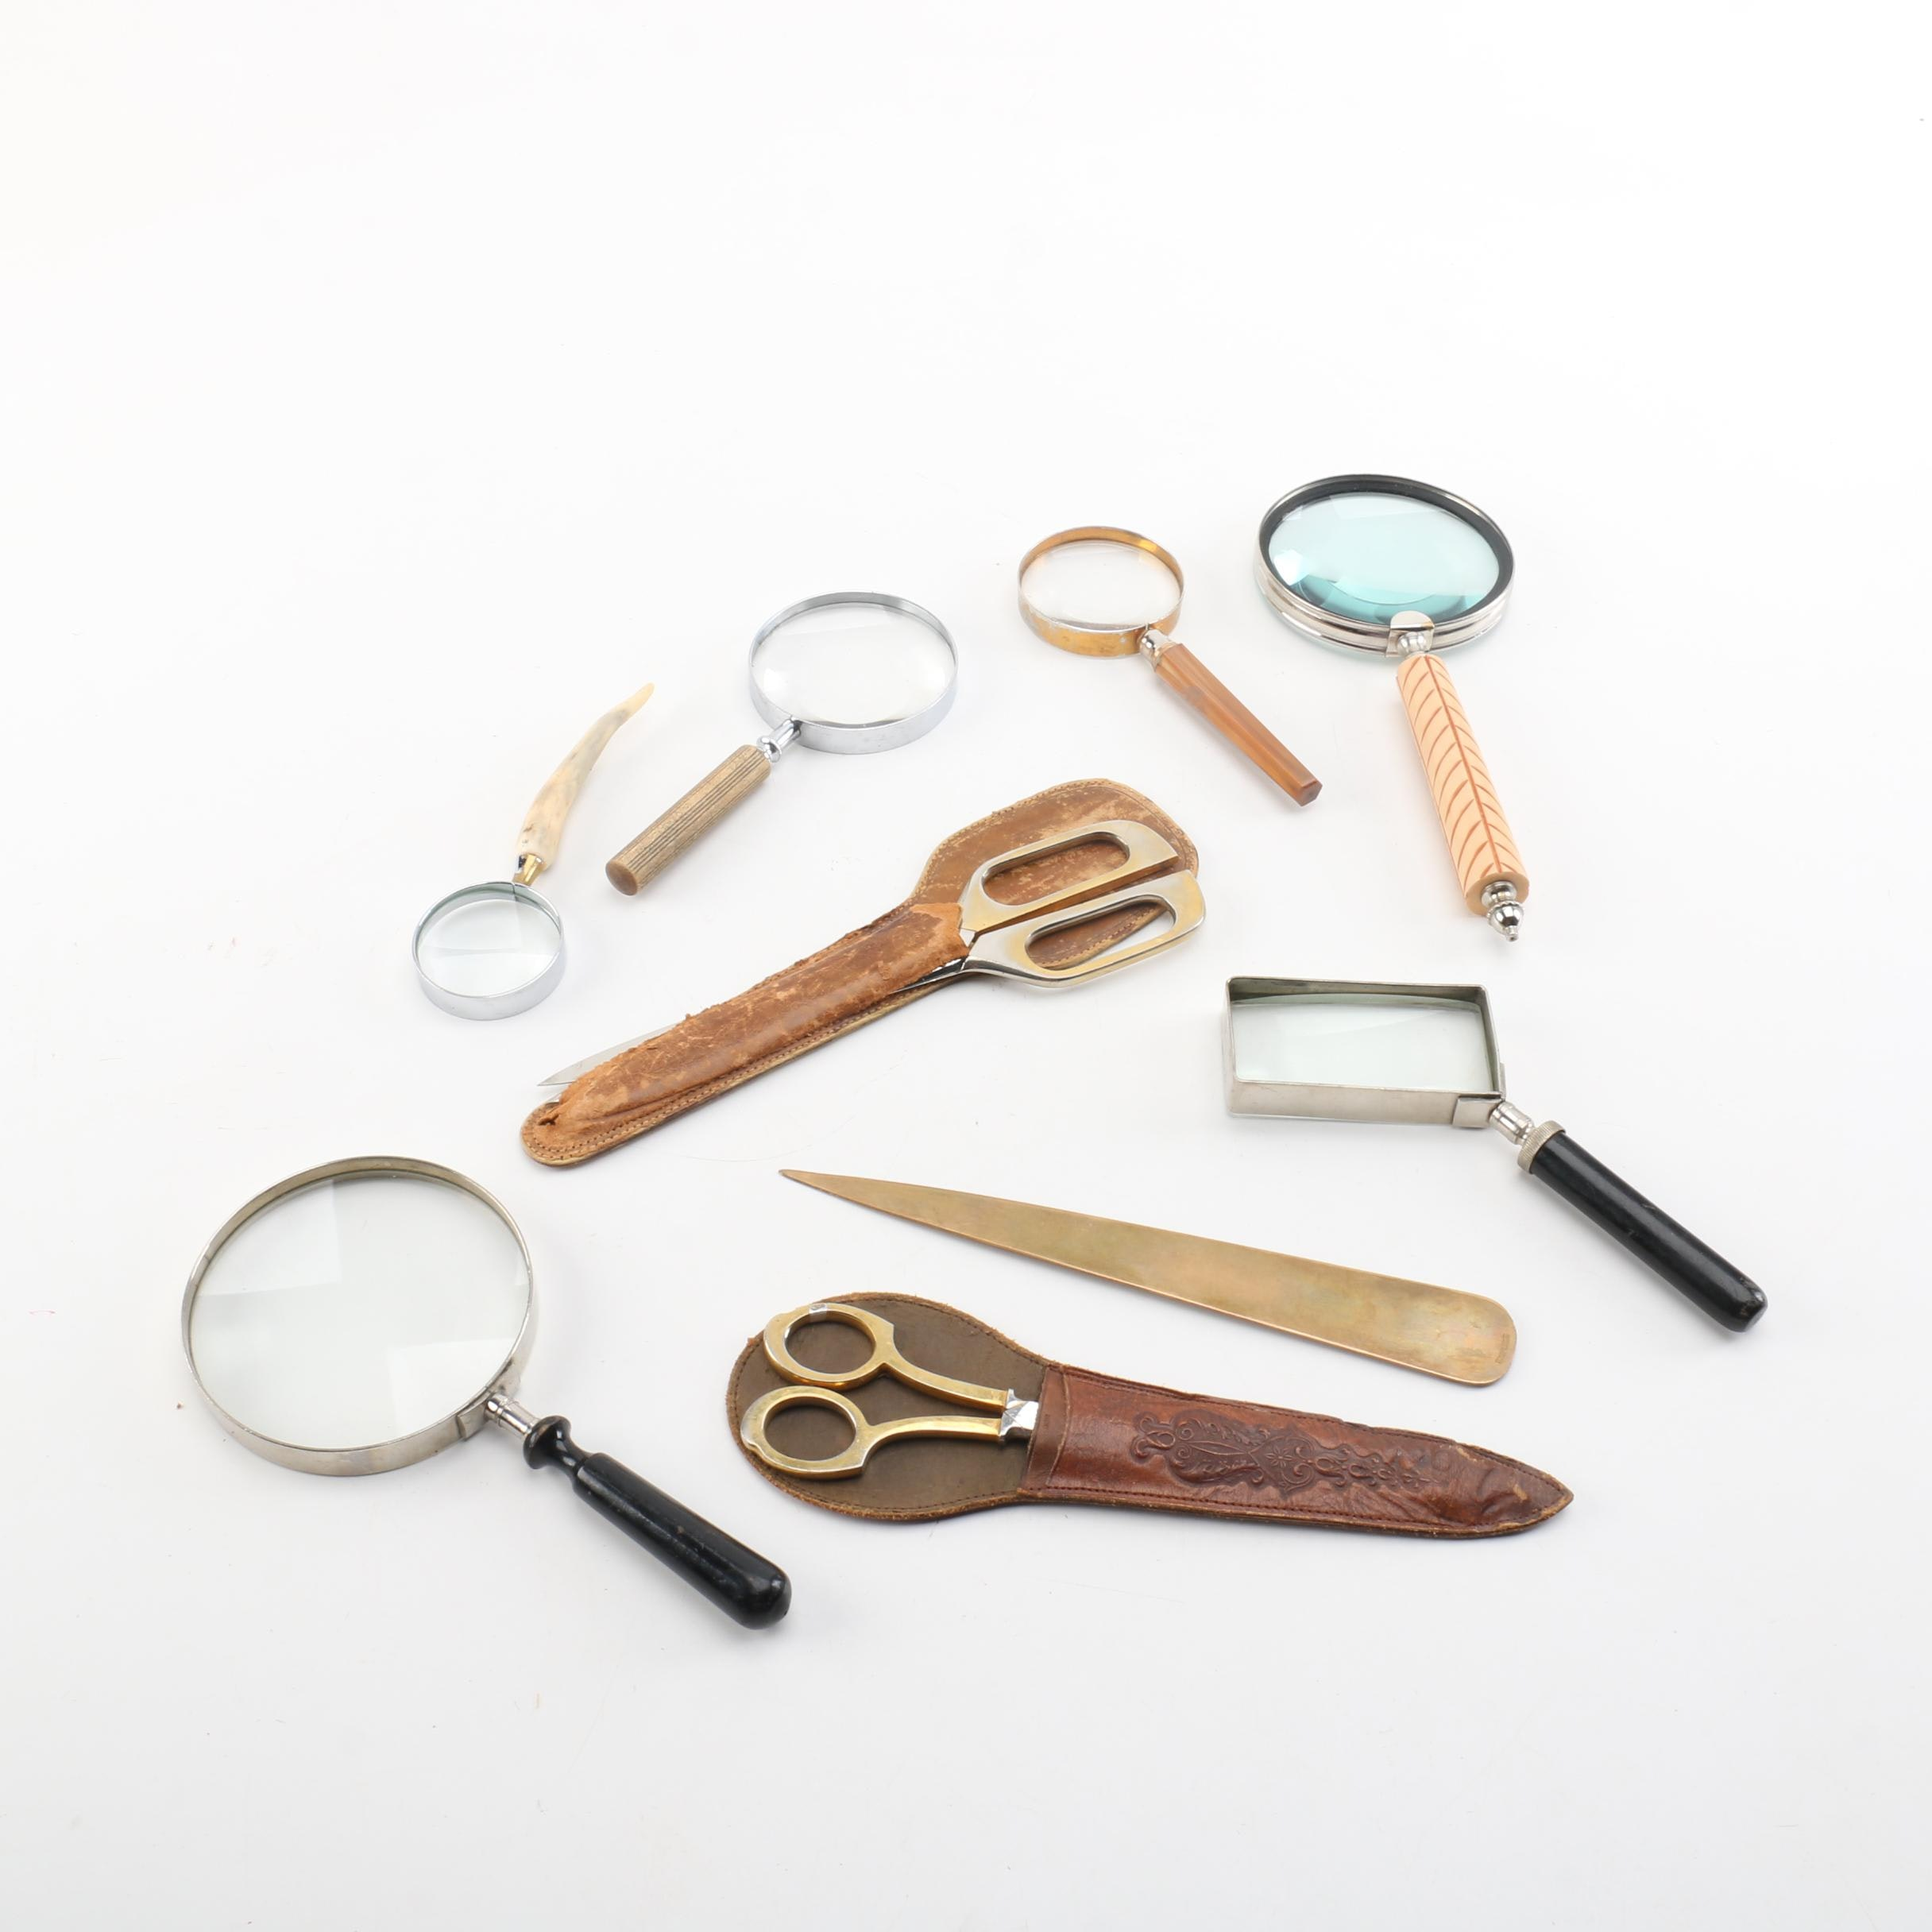 Vintage Magnifying Glasses and Scissors